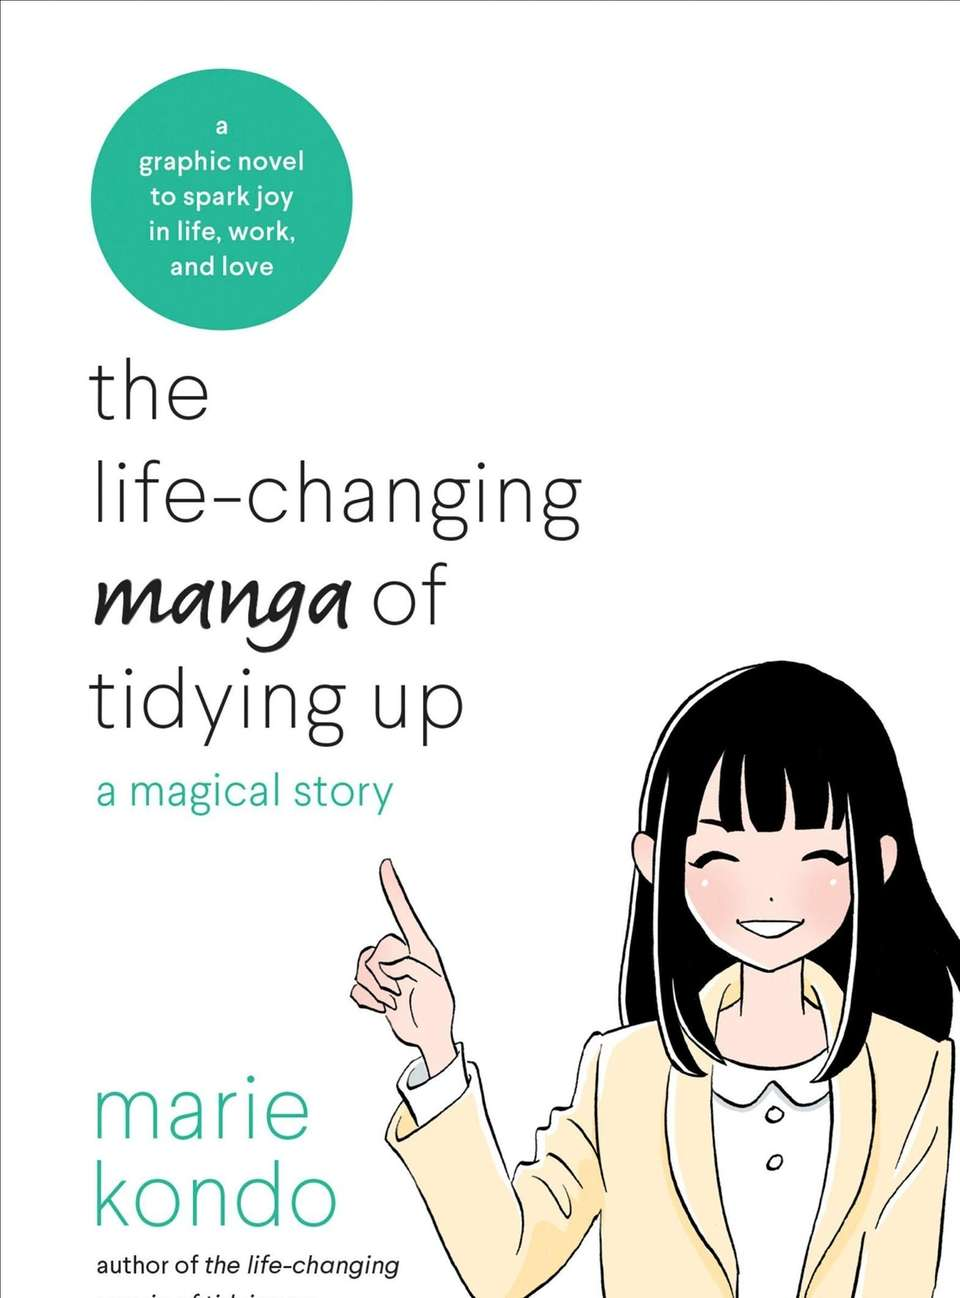 Lifestyle and cleaning guru Marie Kondo weaves her